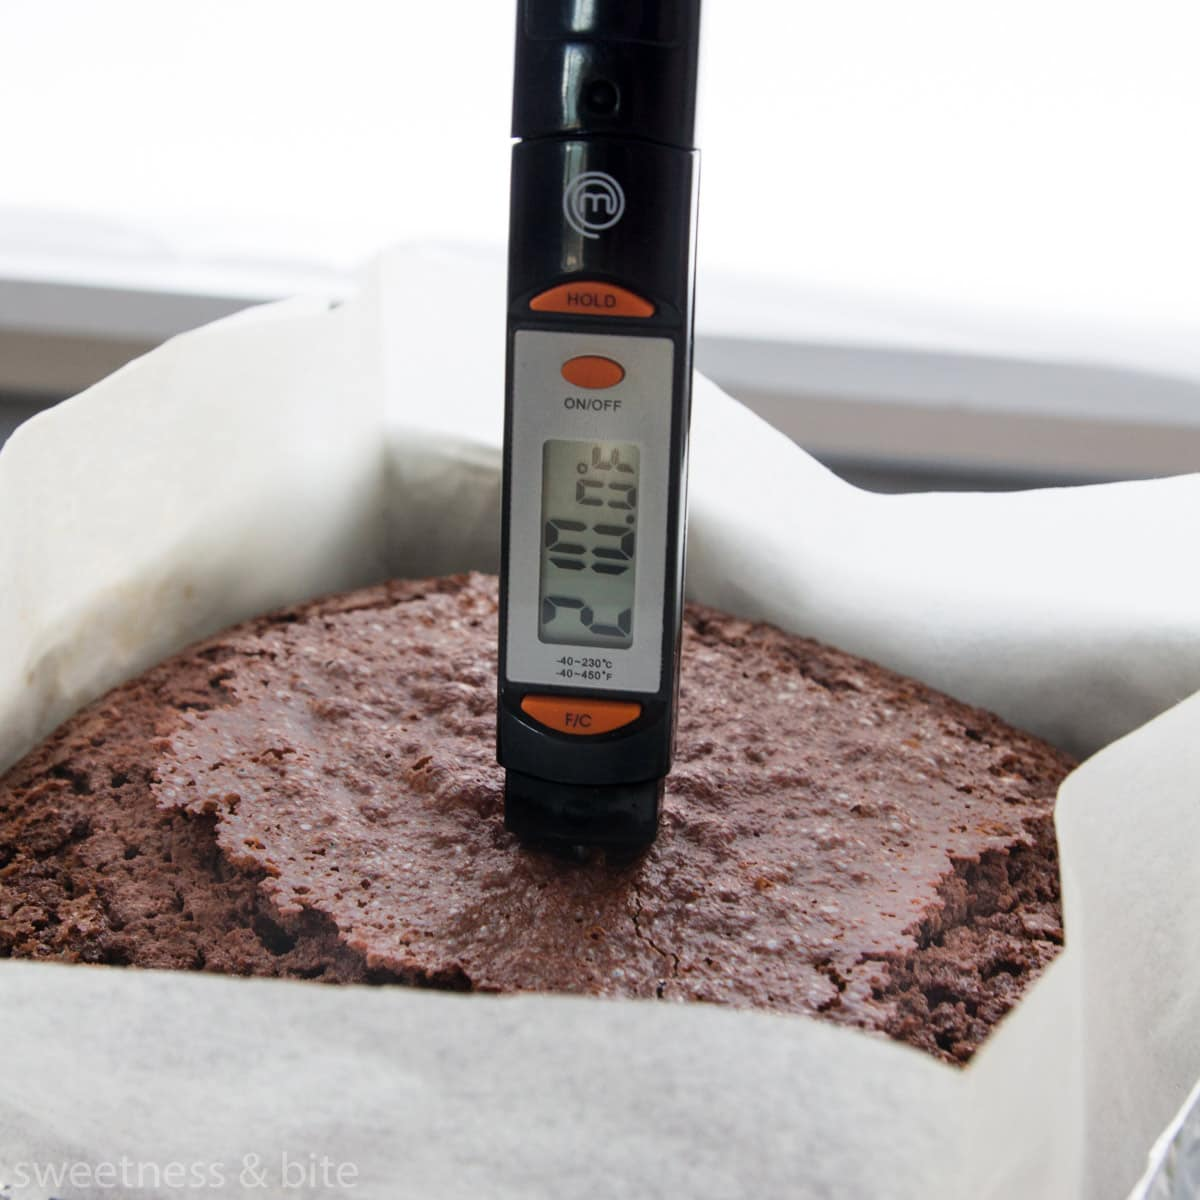 A thermometer being used to check the internal temperature of a cake in Fahrenheit.